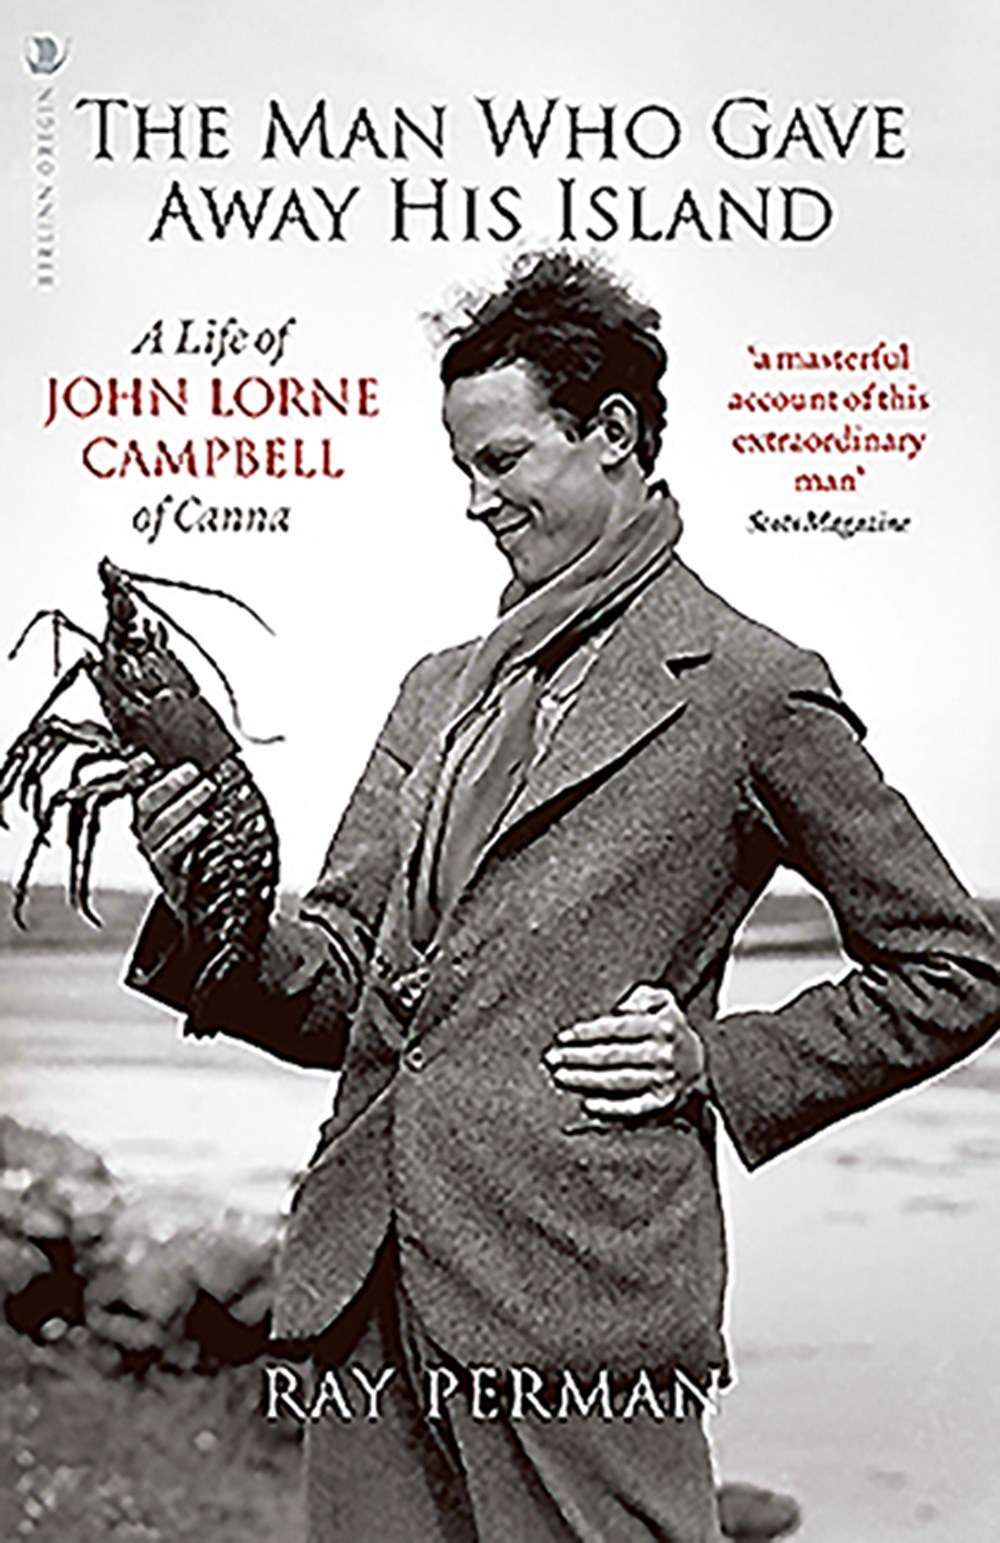 Man Who Gave Away His Island A Life of John Lorne Campbell of Canna